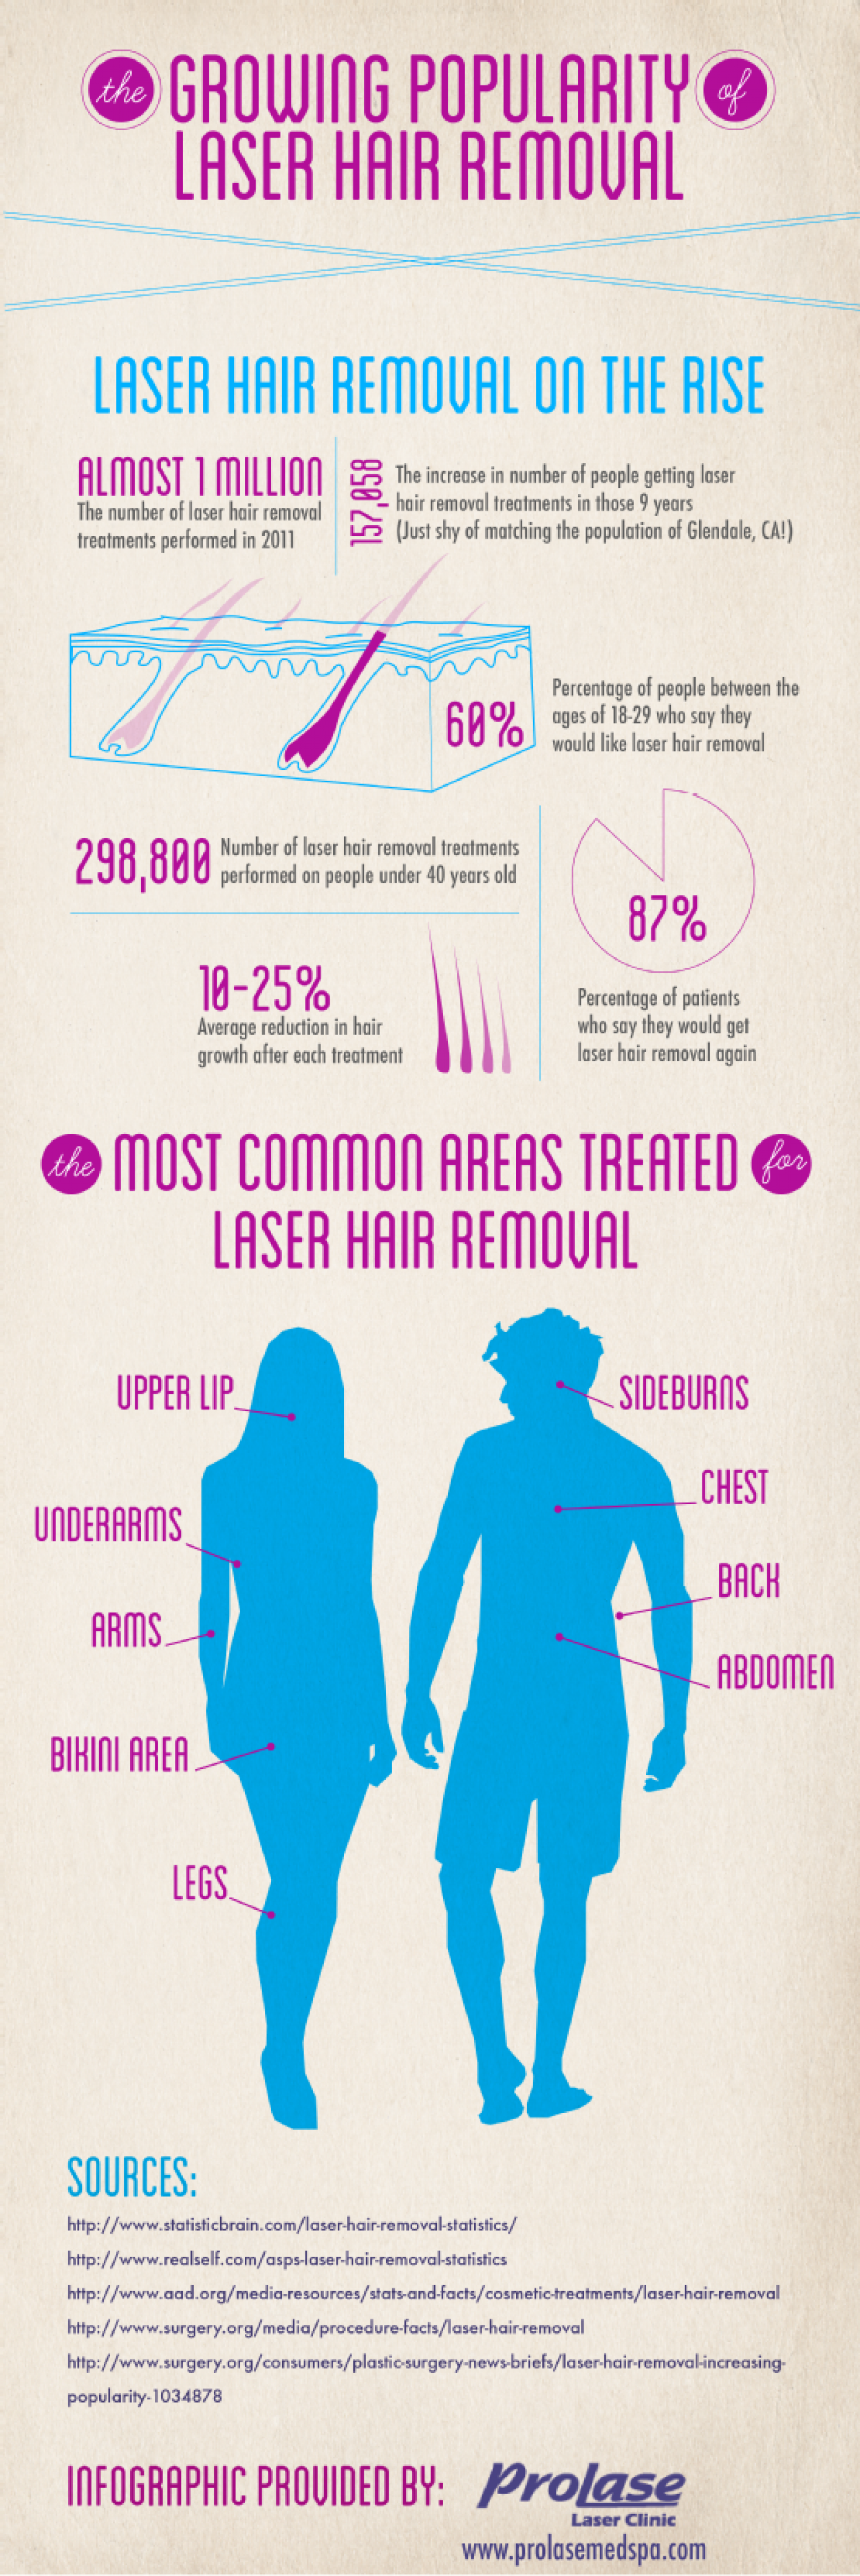 The Growing Popularity of Laser Hair Removal  Infographic